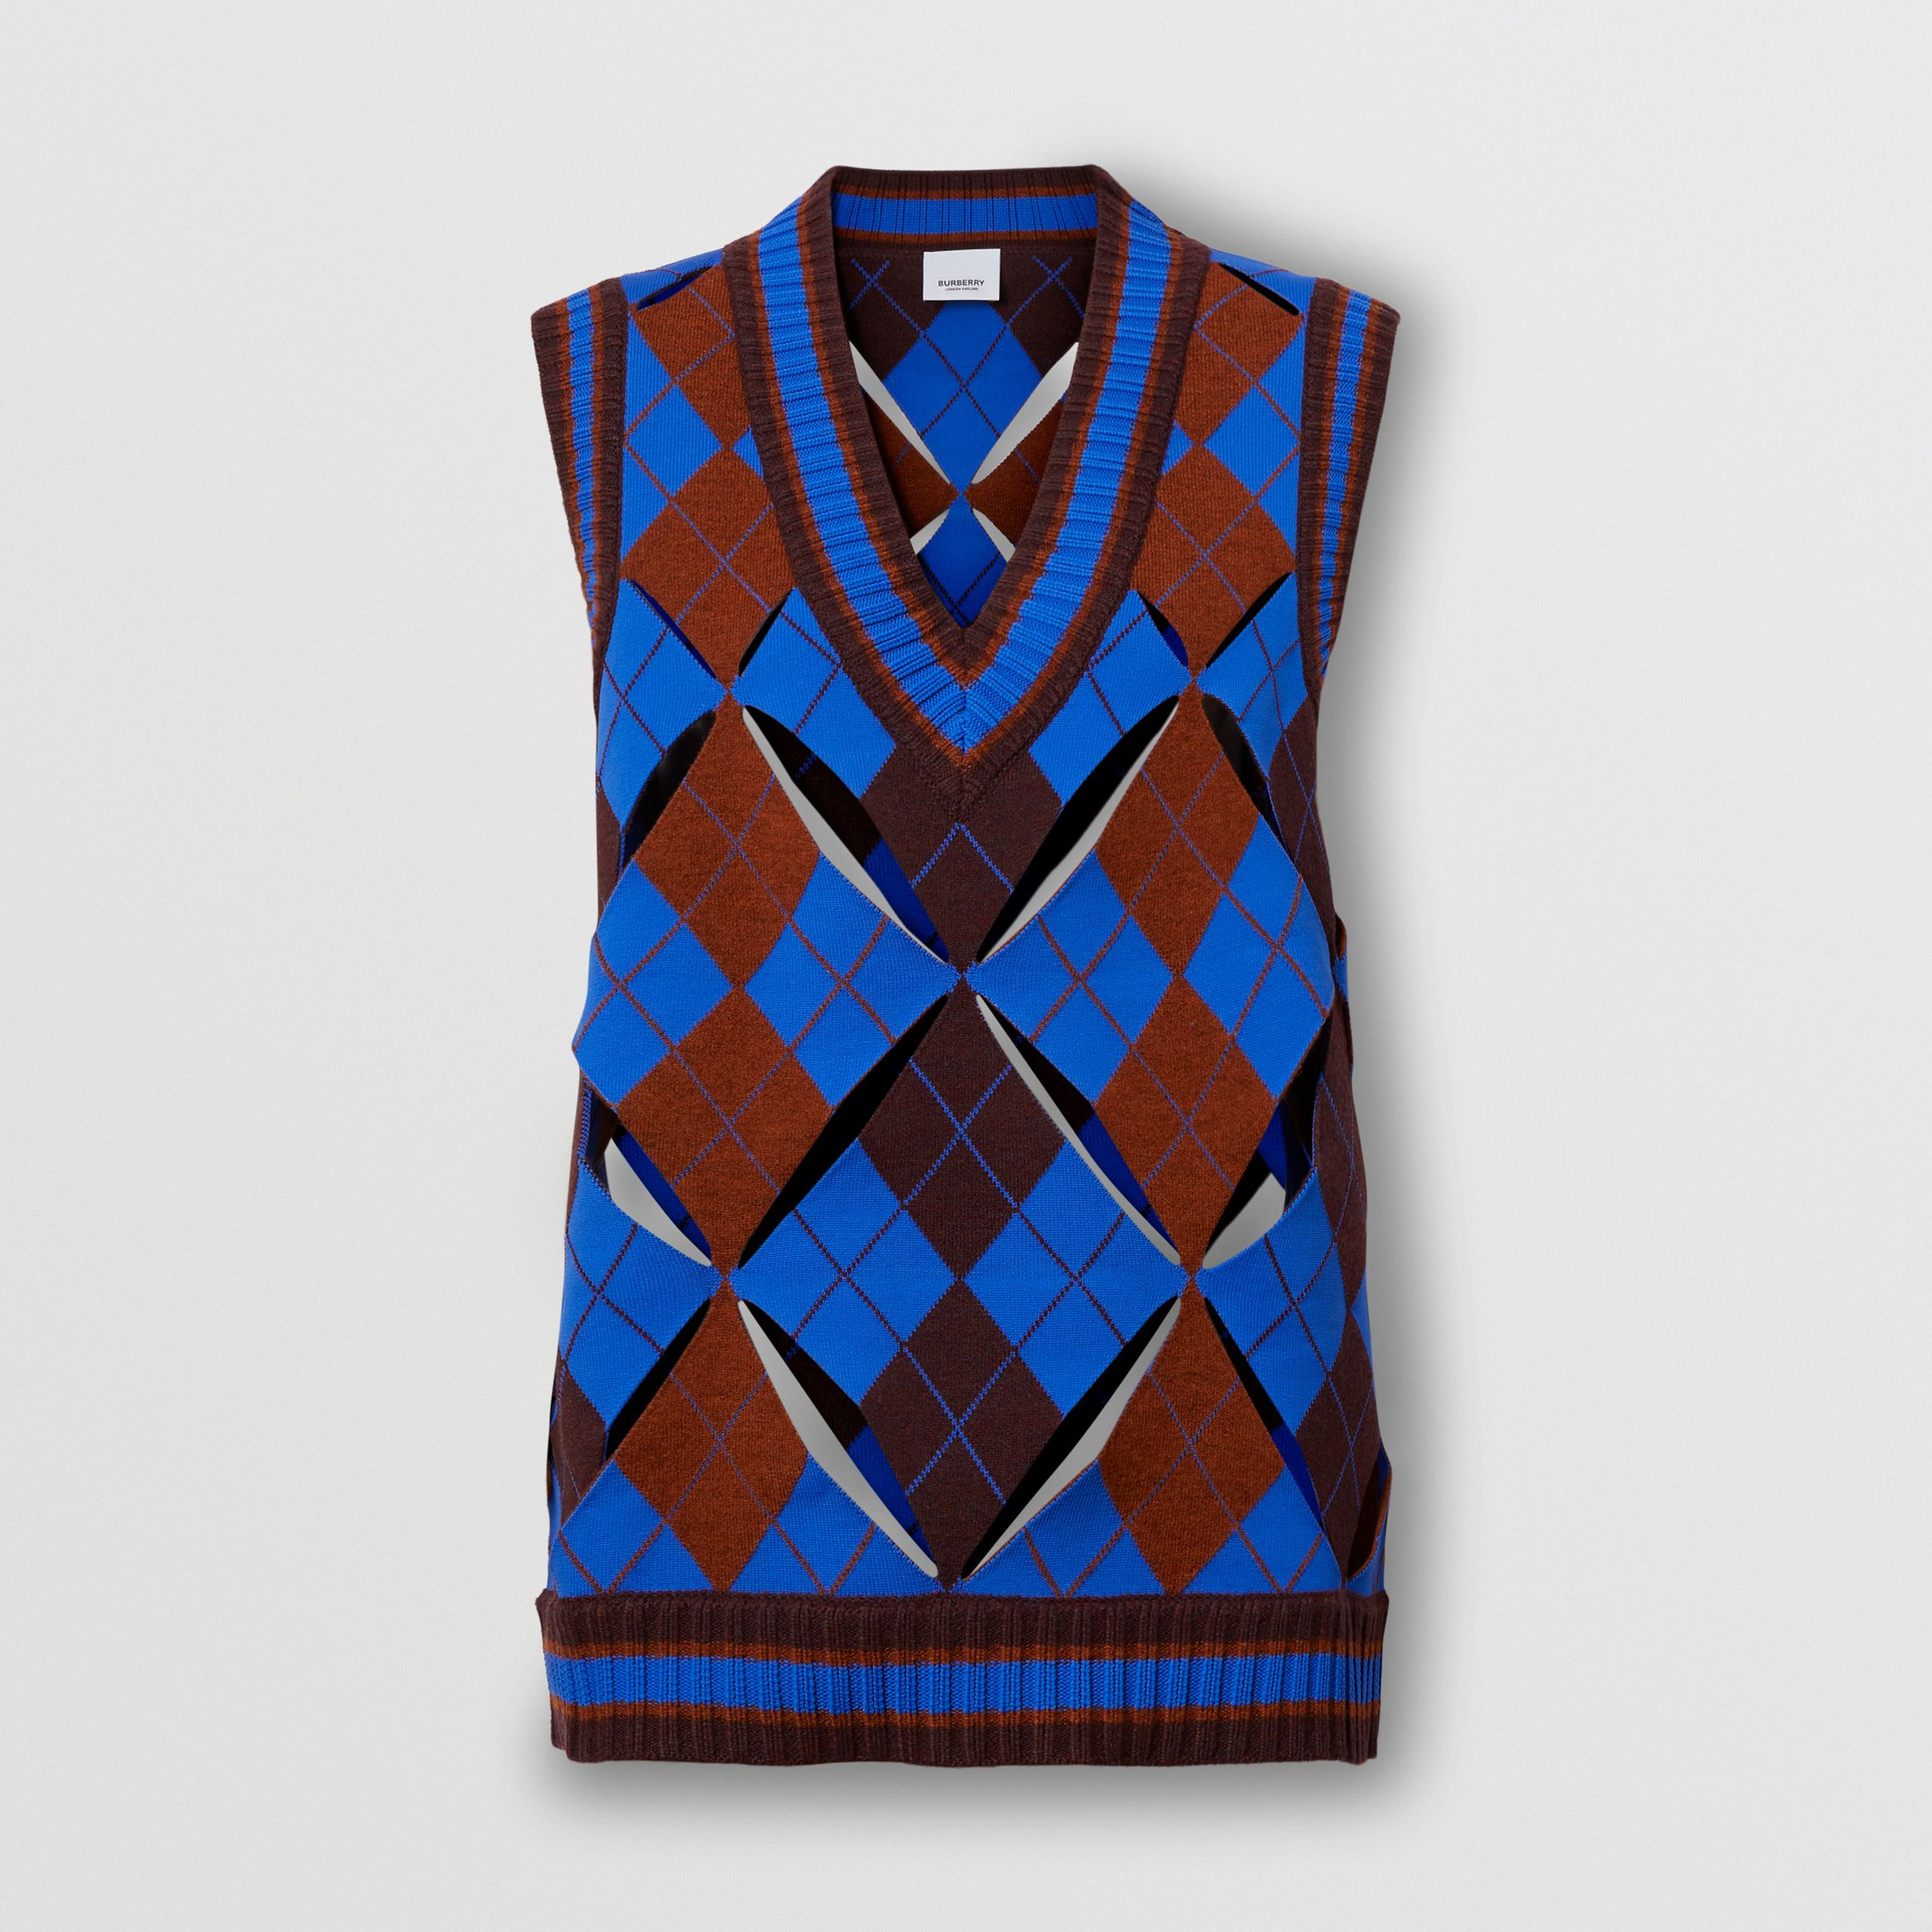 Cut-out Detail Argyle Technical Wool Jacquard Vest in Bright Blue - Women | Burberry Australia - 1